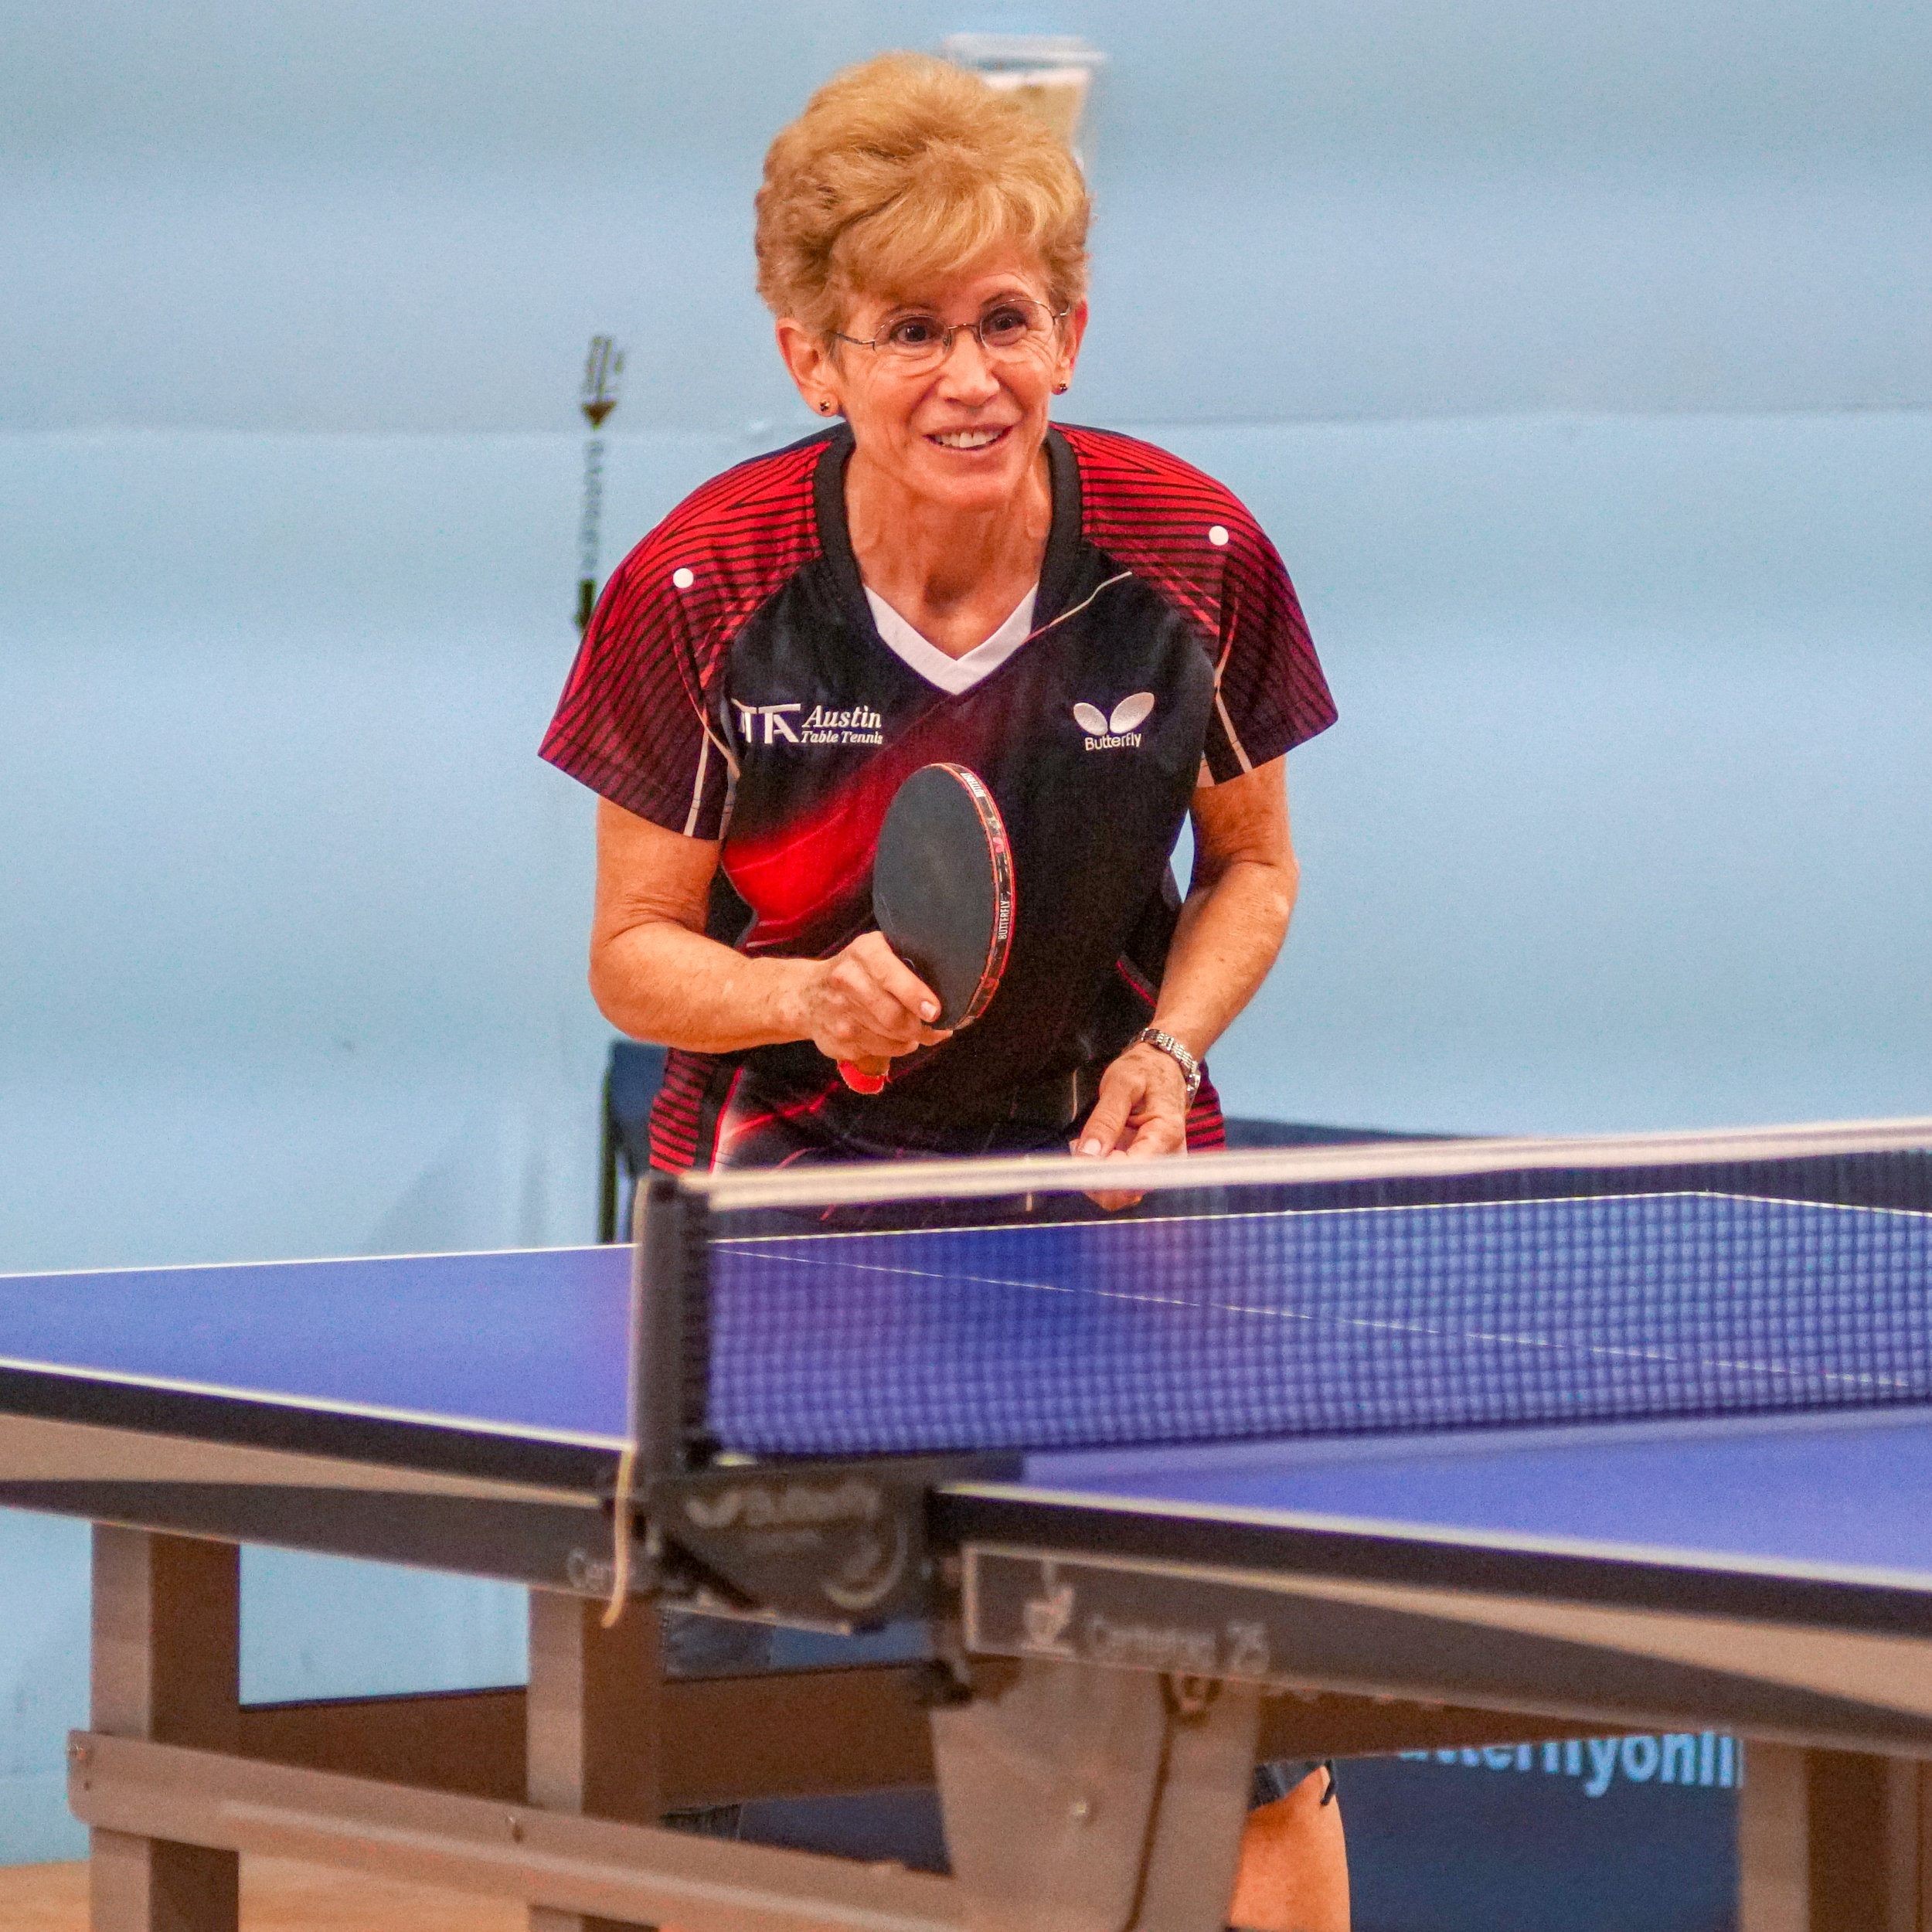 ASG18 Table Tennis-13.jpg